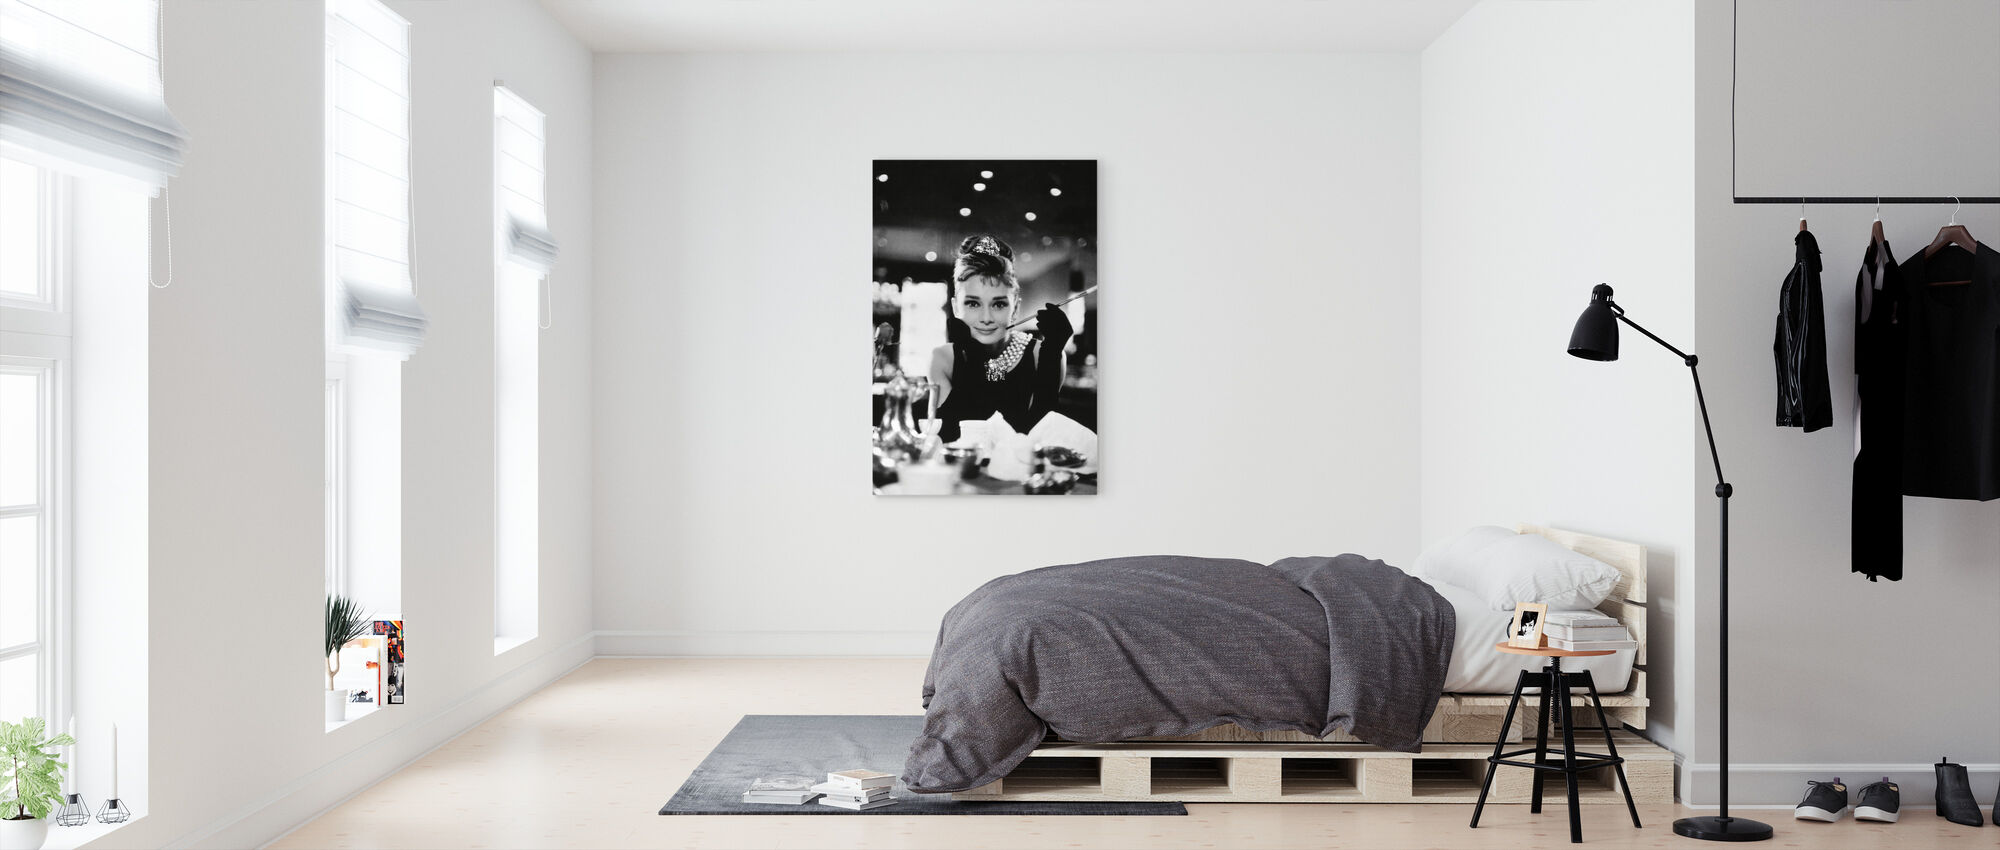 Audrey Hepburn in Breakfast at Tiffanys - Canvas print - Bedroom